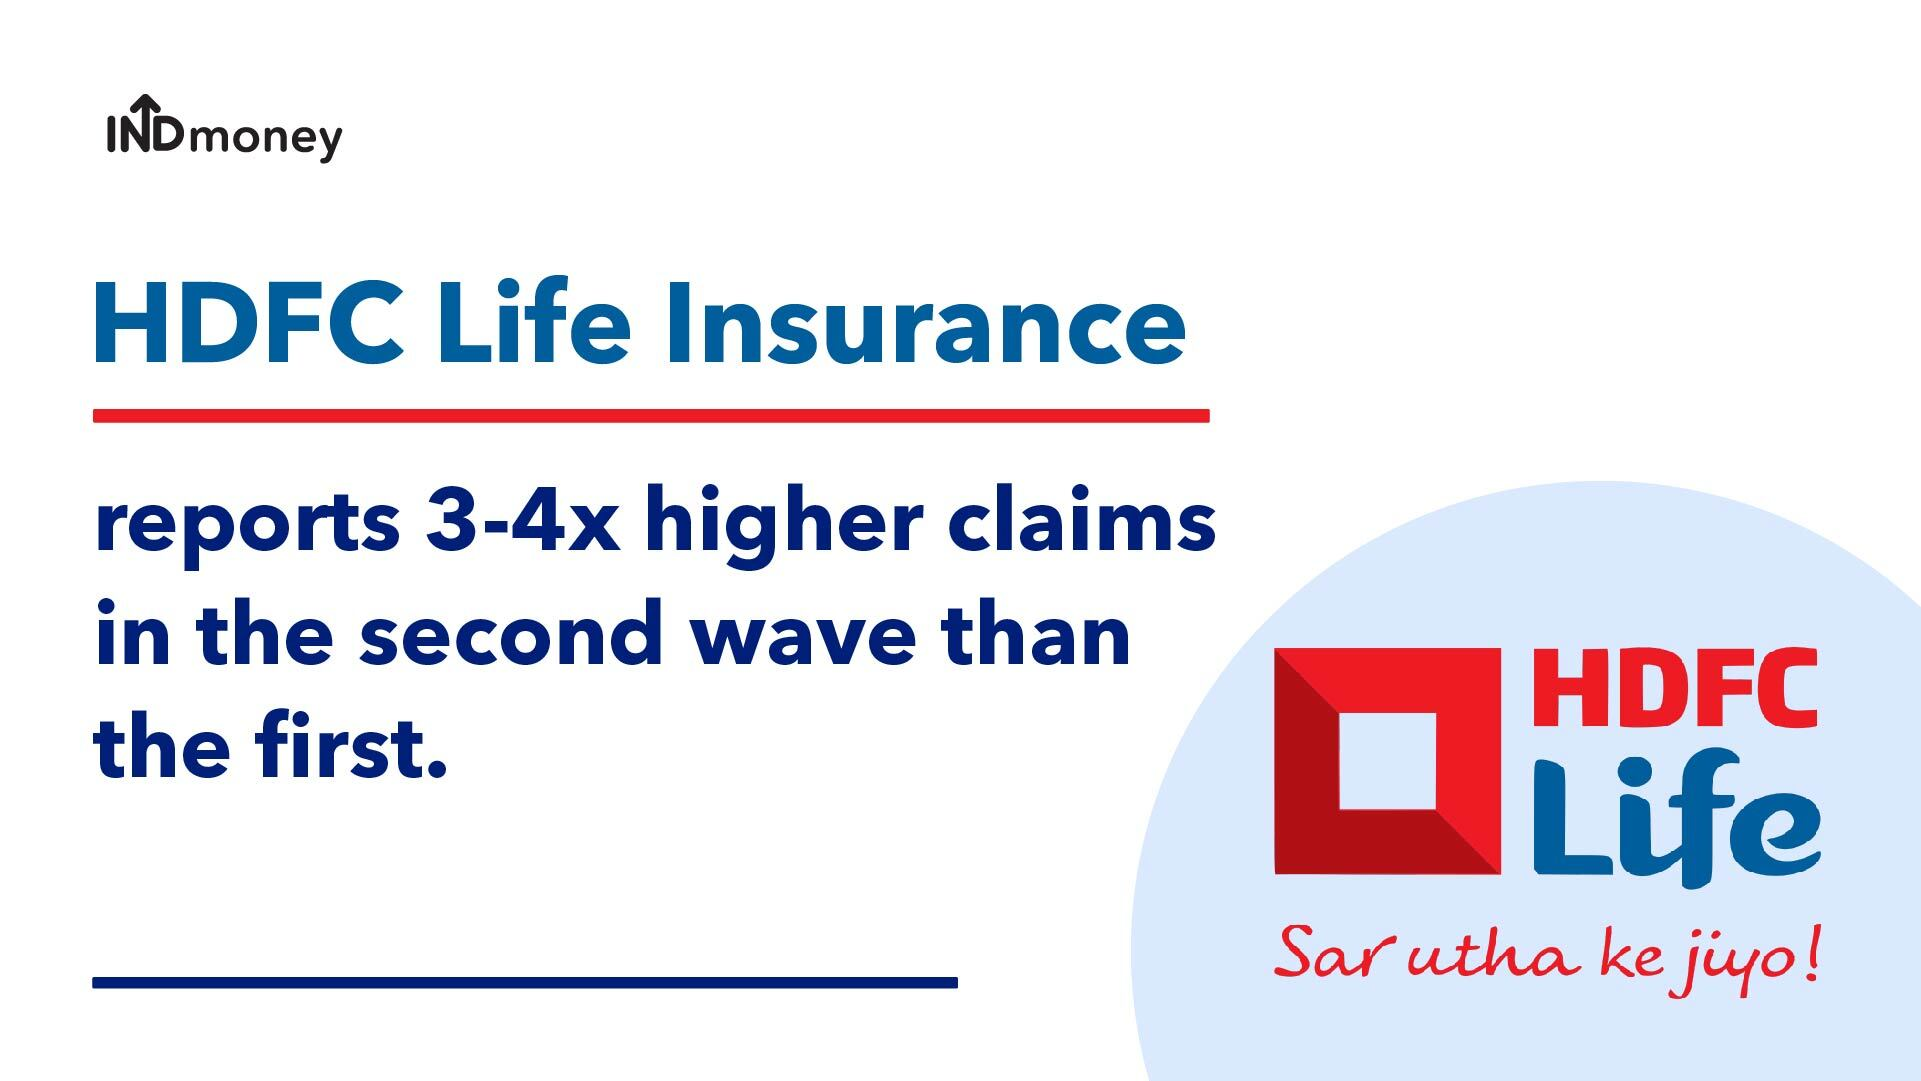 HDFC Life Results: HDFC Life Q1 Results (2021) Date, Earnings, News & More